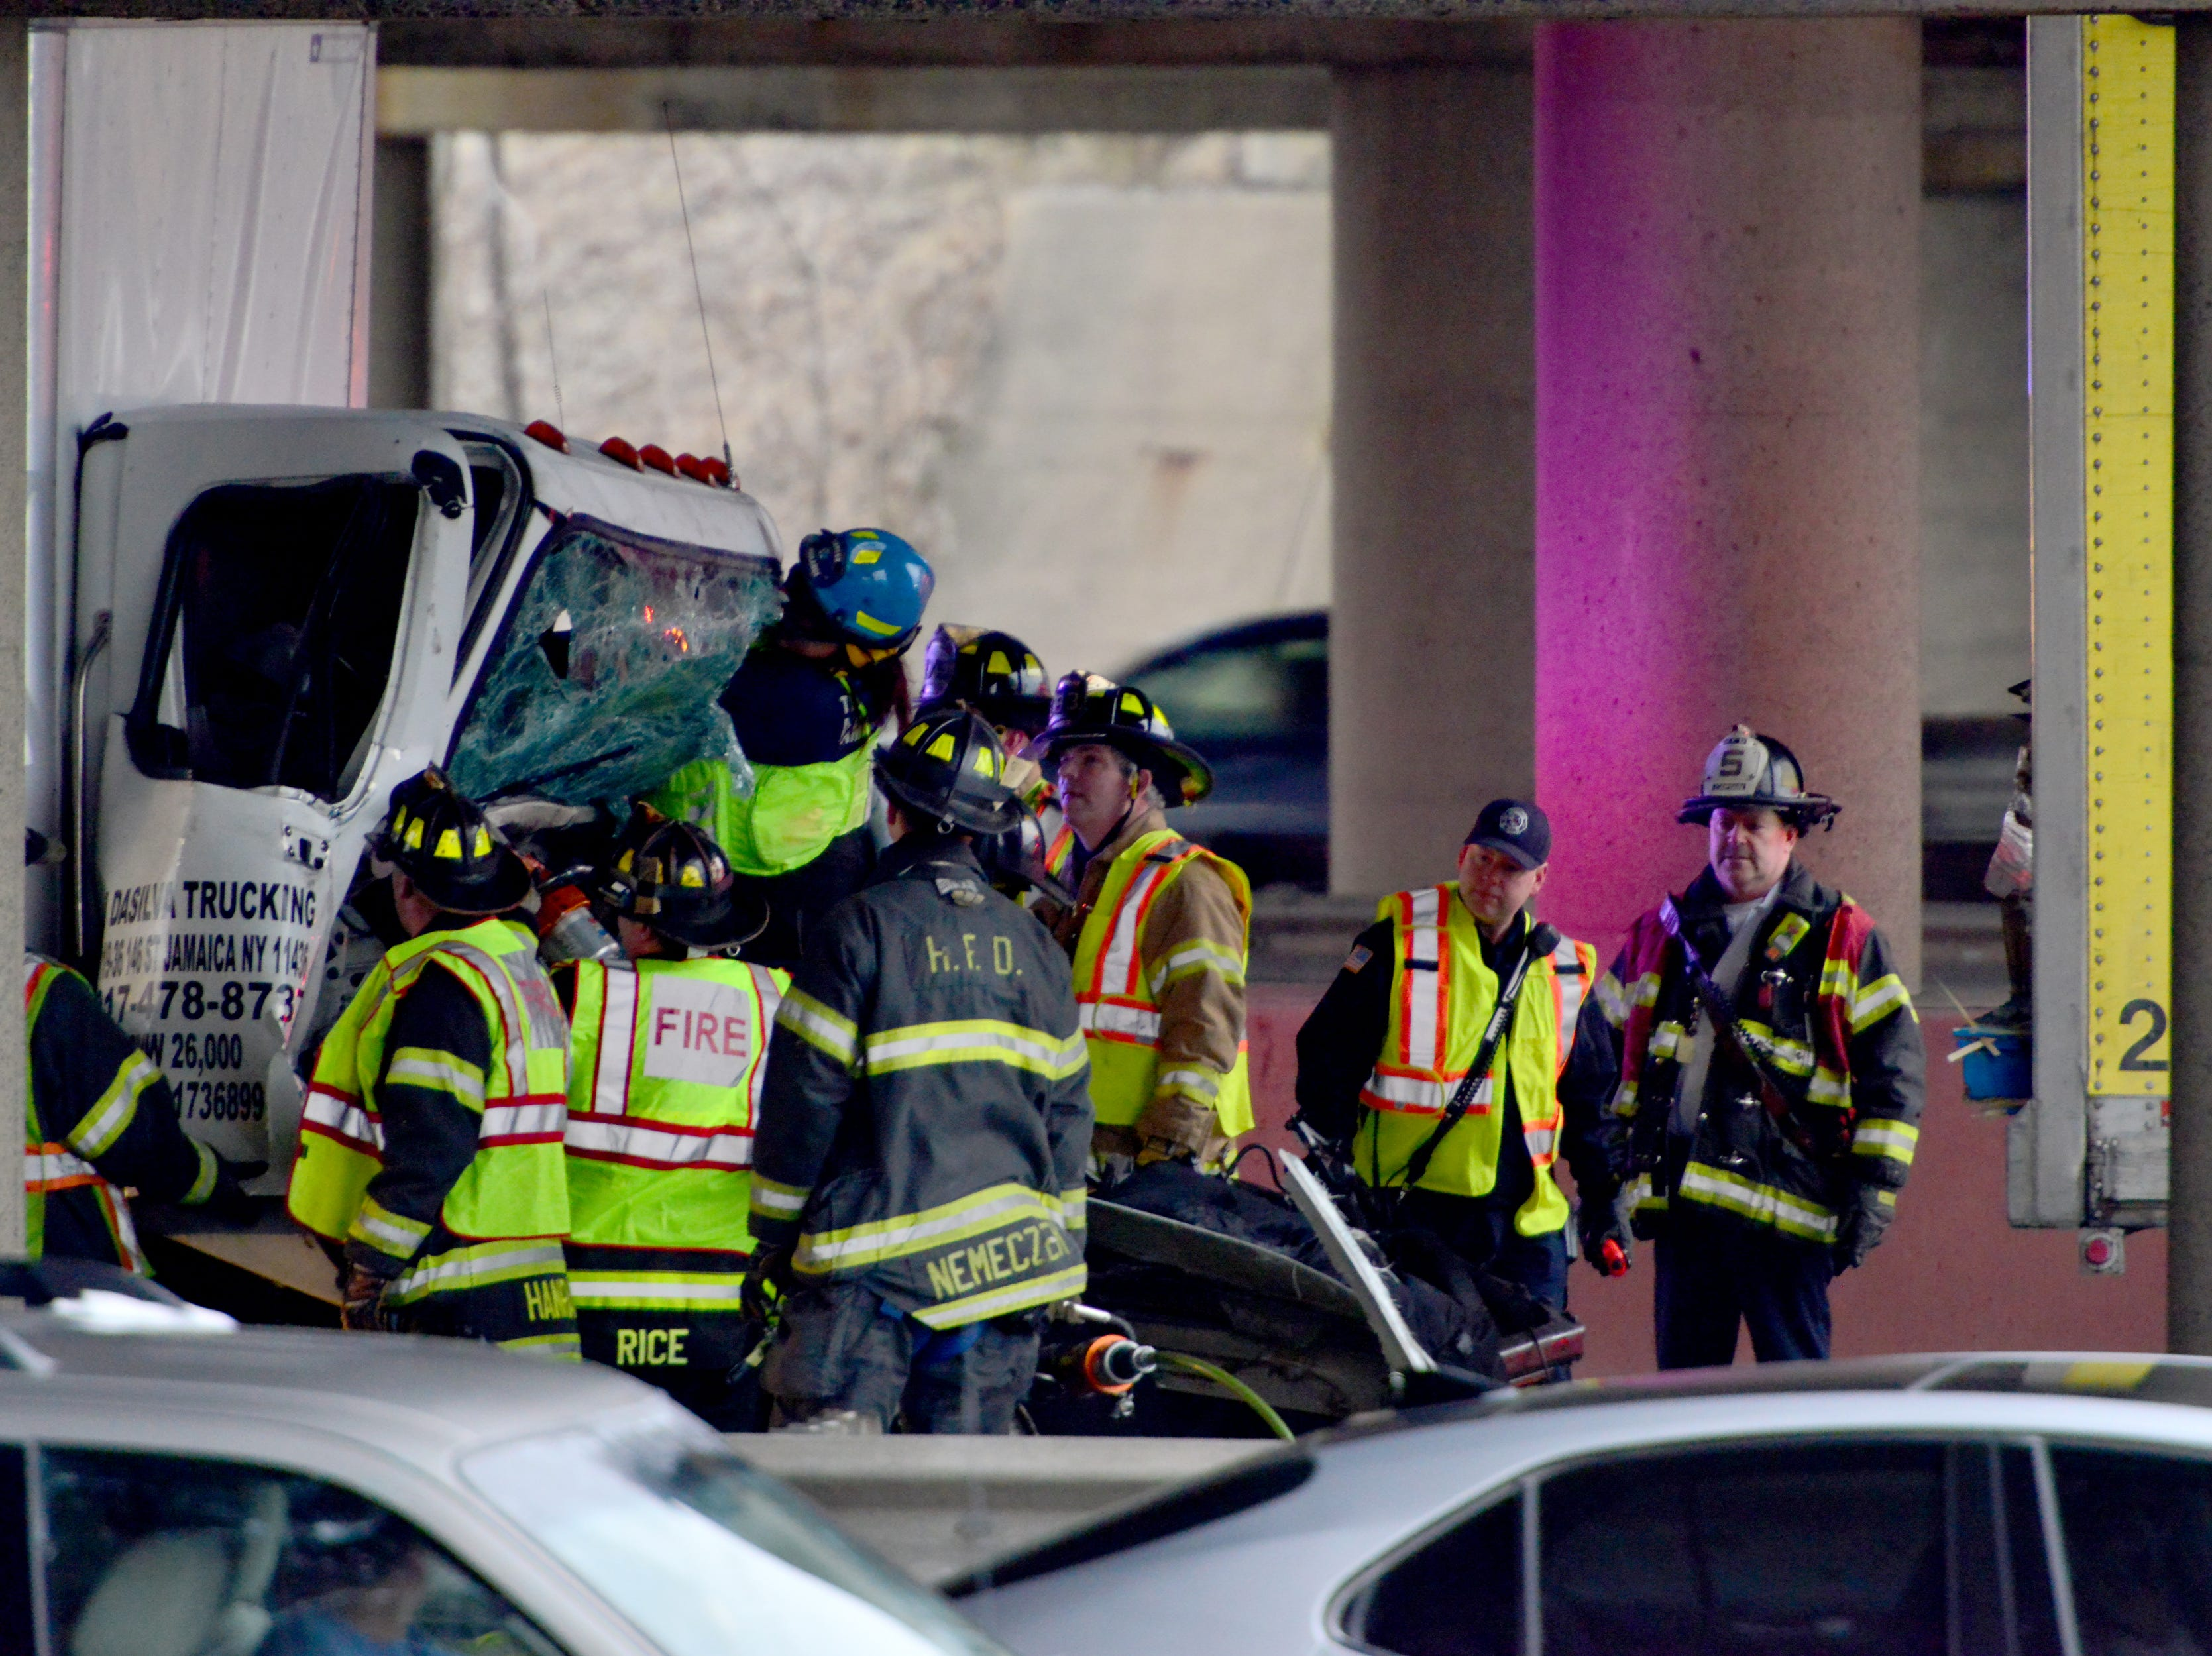 Emergency personel attempt to extricate a person from the cab of truck on I-95 northbound in Teaneck on Monday February 11, 2019. The accident between two truck under the Degraw Ave overpass has stopped all express lane traffic.